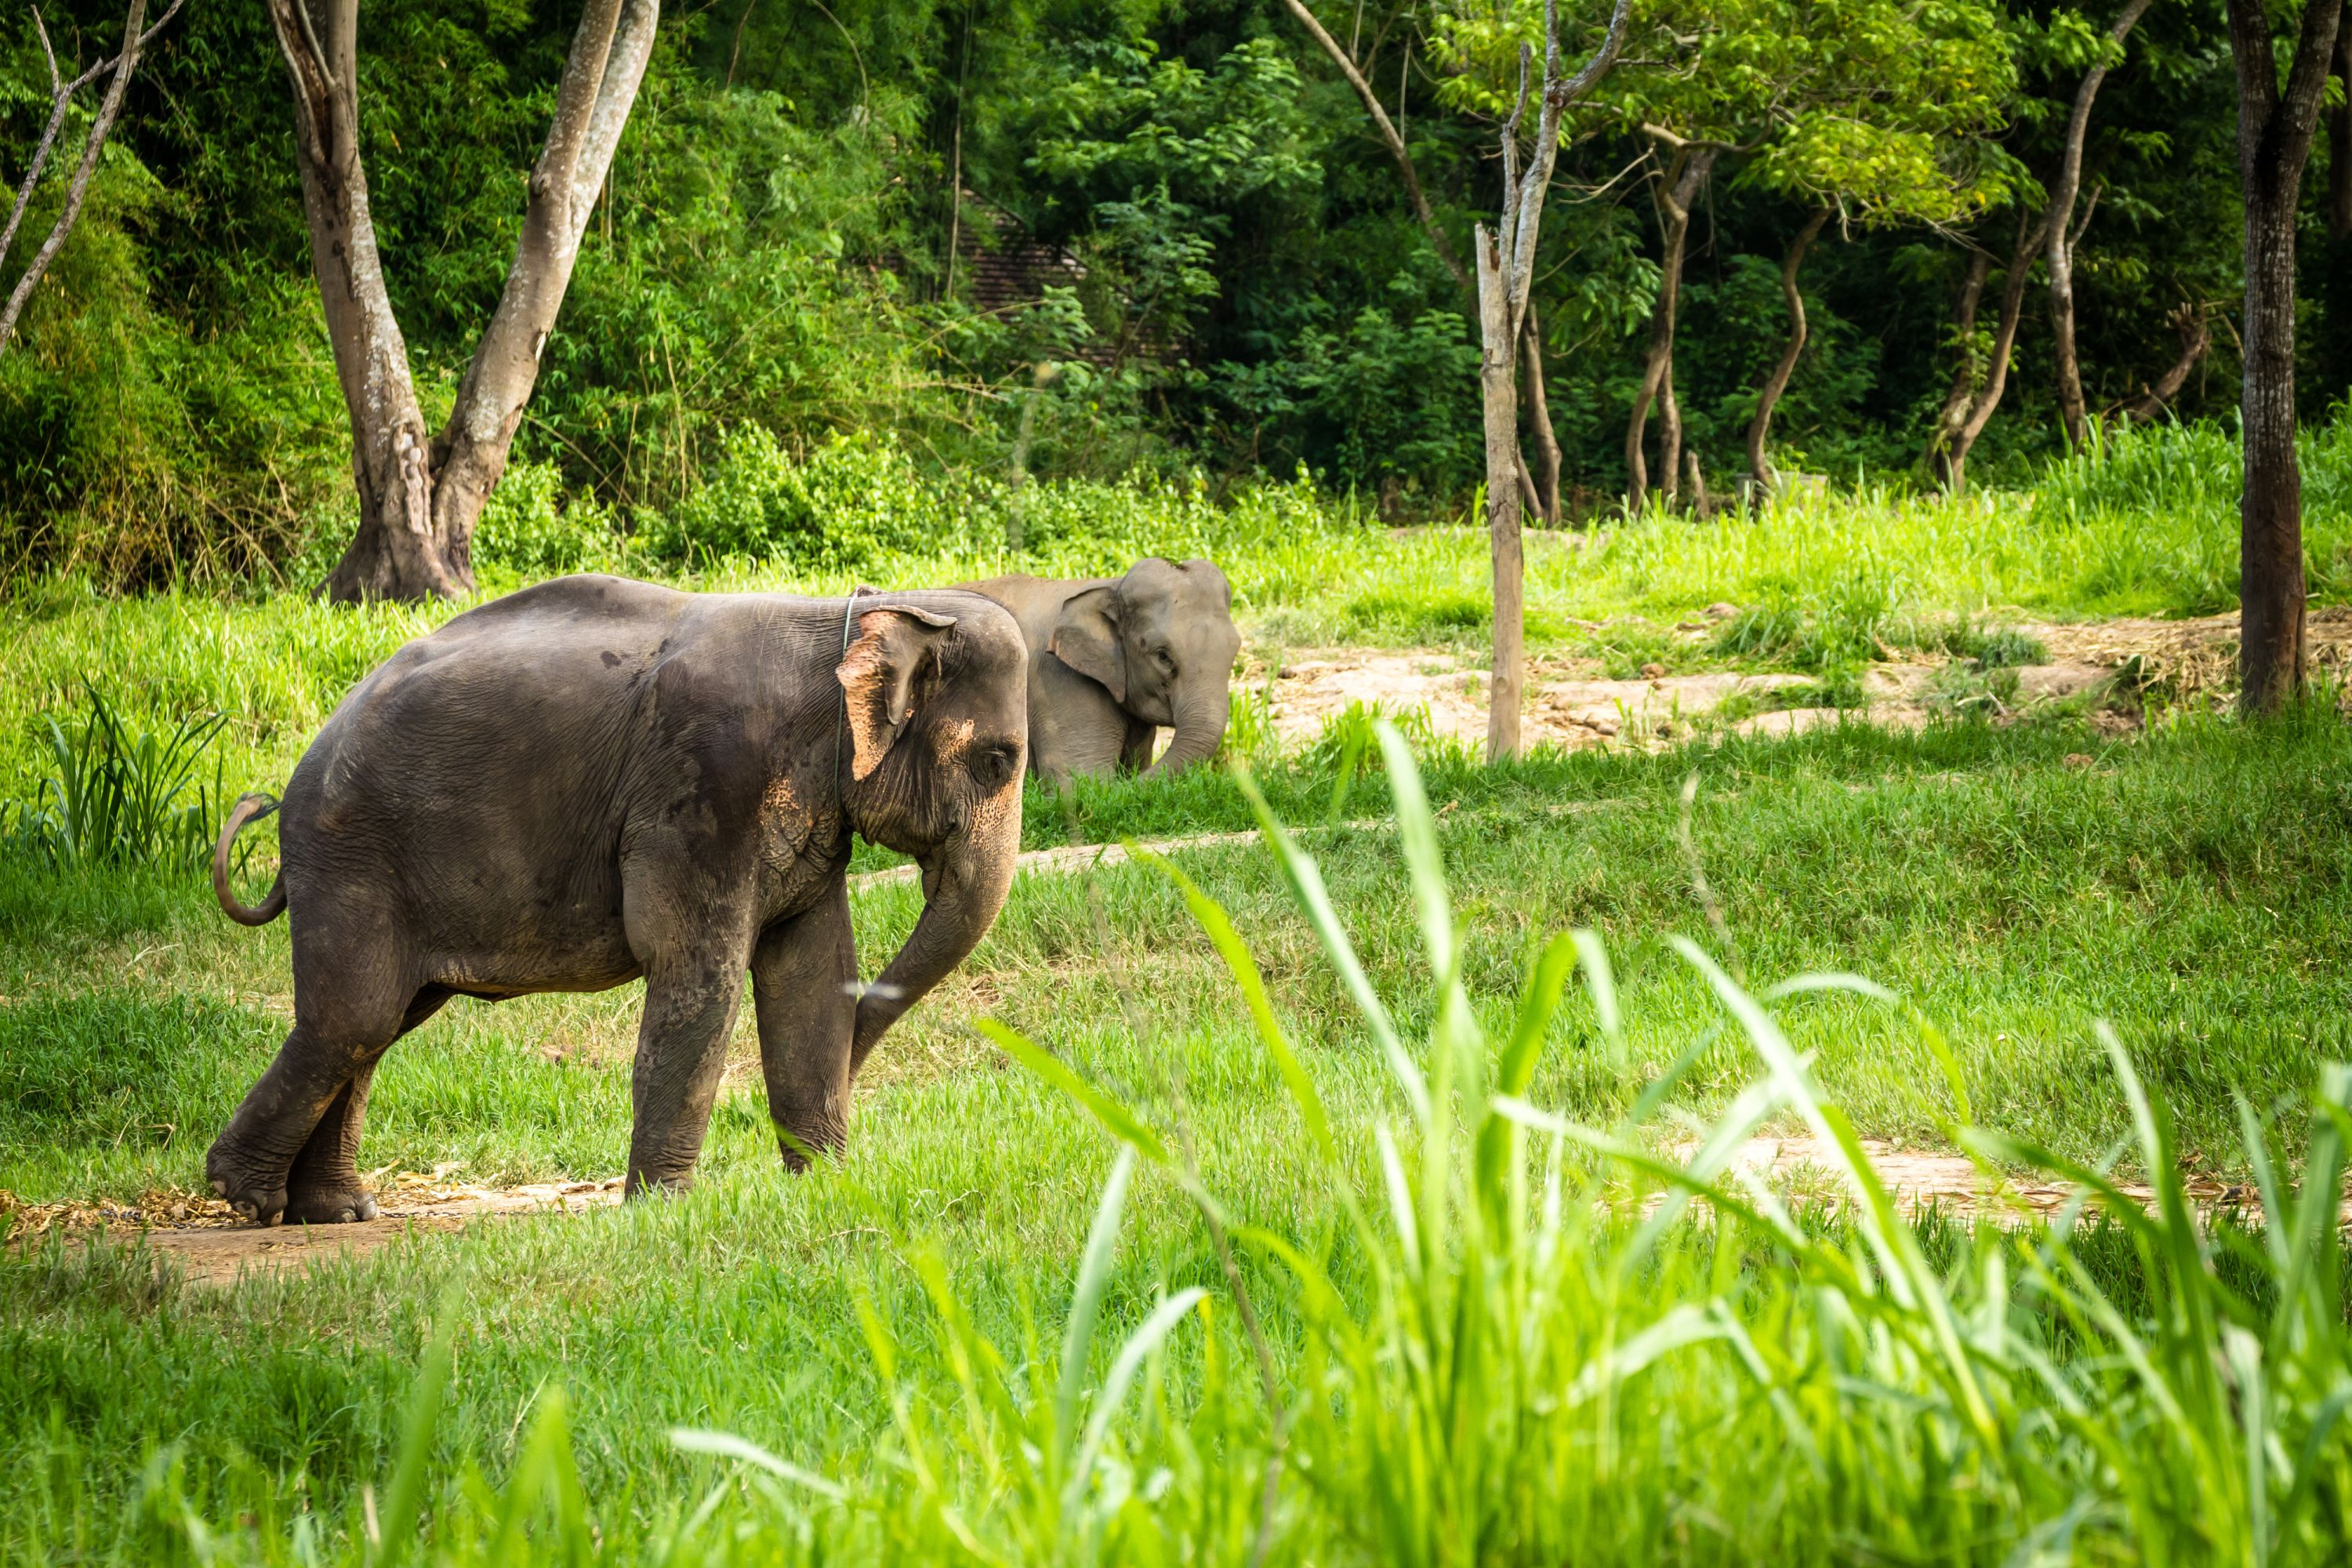 wildlife-elephant-14183.jpg